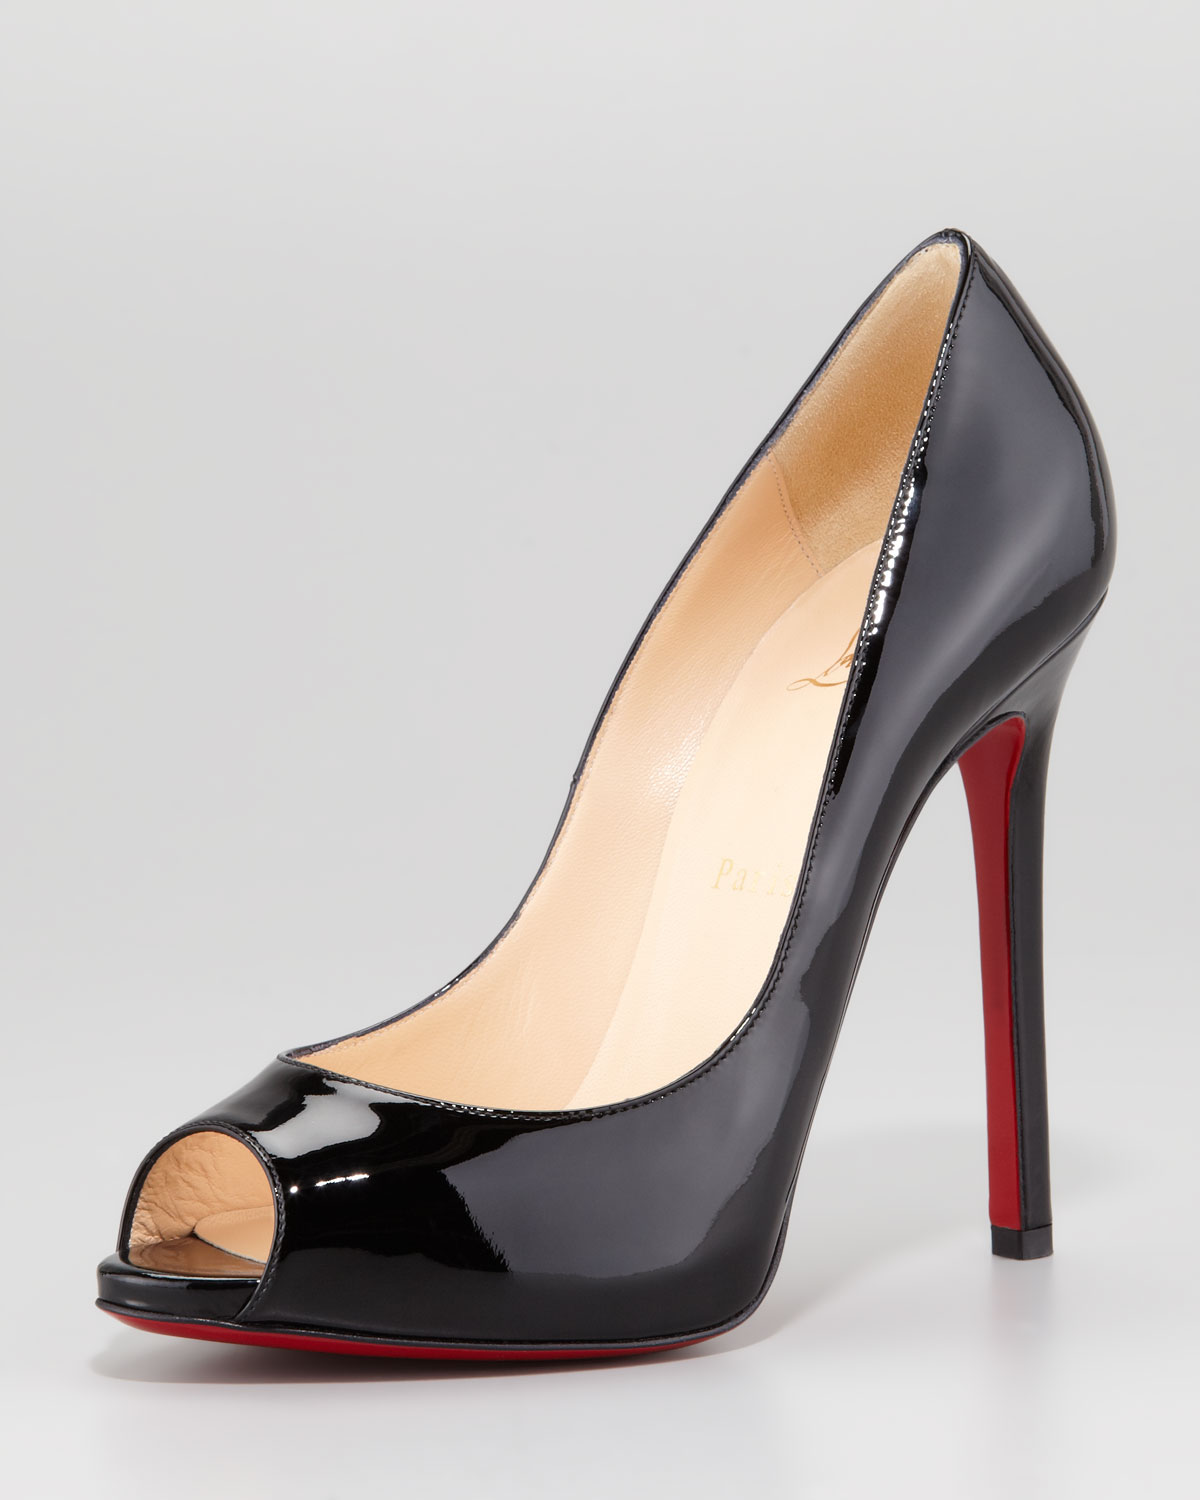 christian louboutin peep-toe platform pumps Black suede covered ...